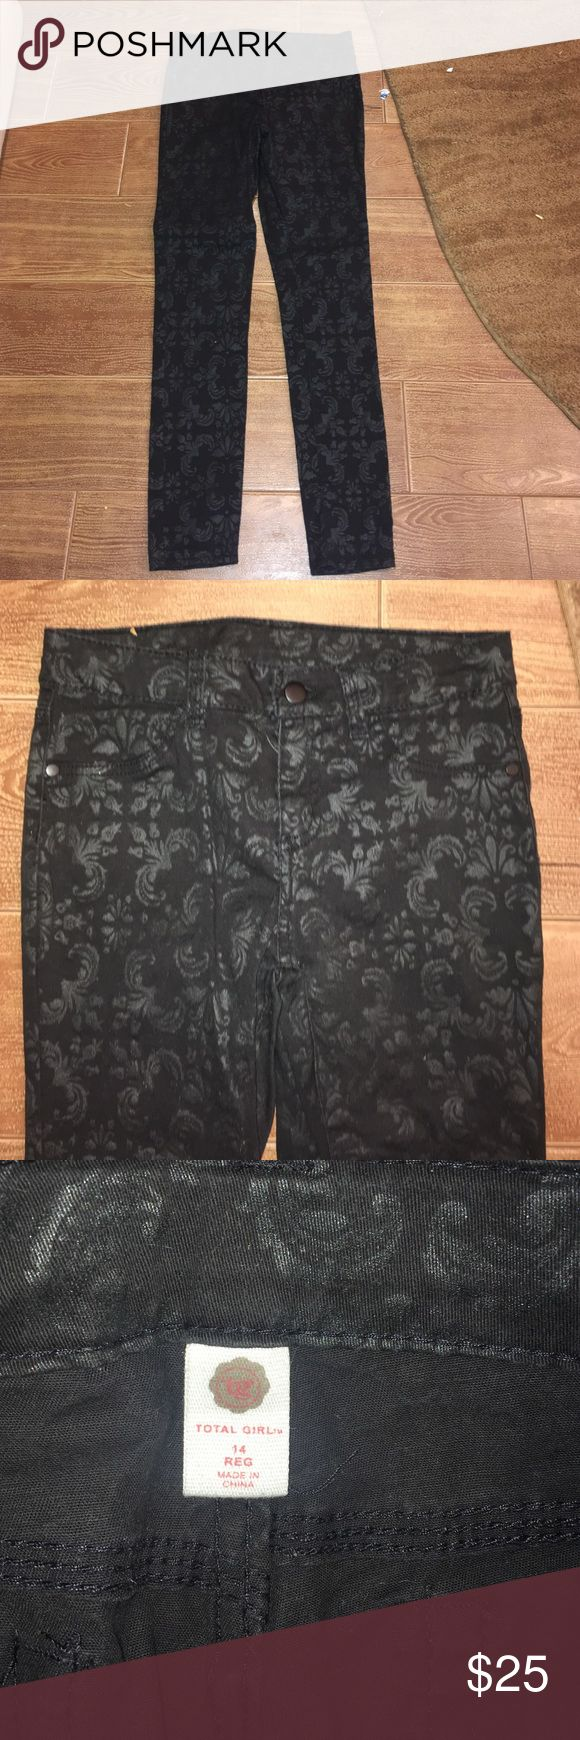 Black printed skinny jeans Black printed skinny jeans. Good condition total girl Bottoms Jeans